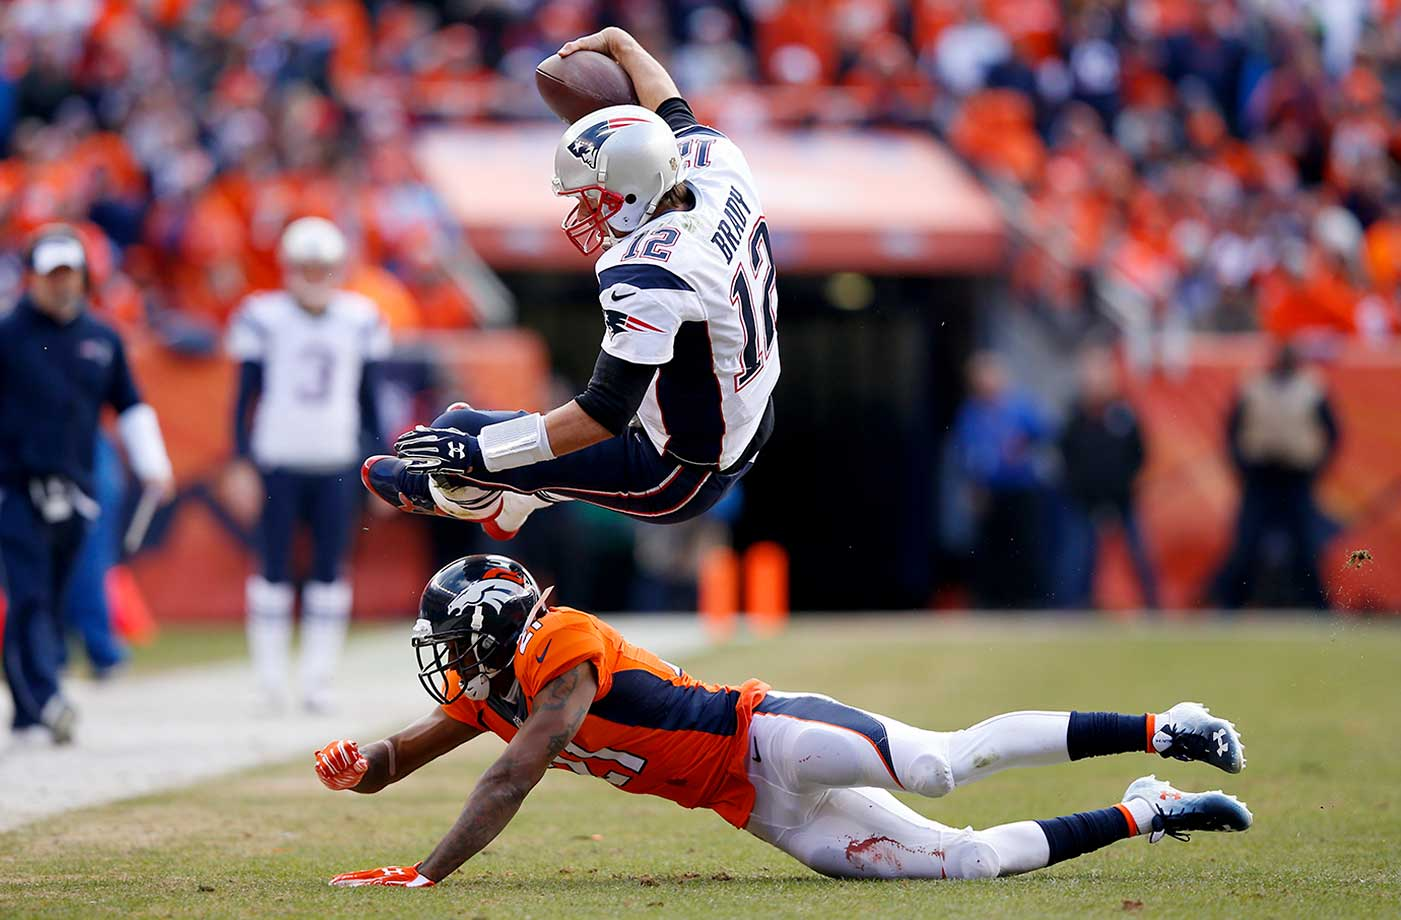 Tom Brady is tackled by Aqib Talib after an 11-yard scramble in the second quarter.